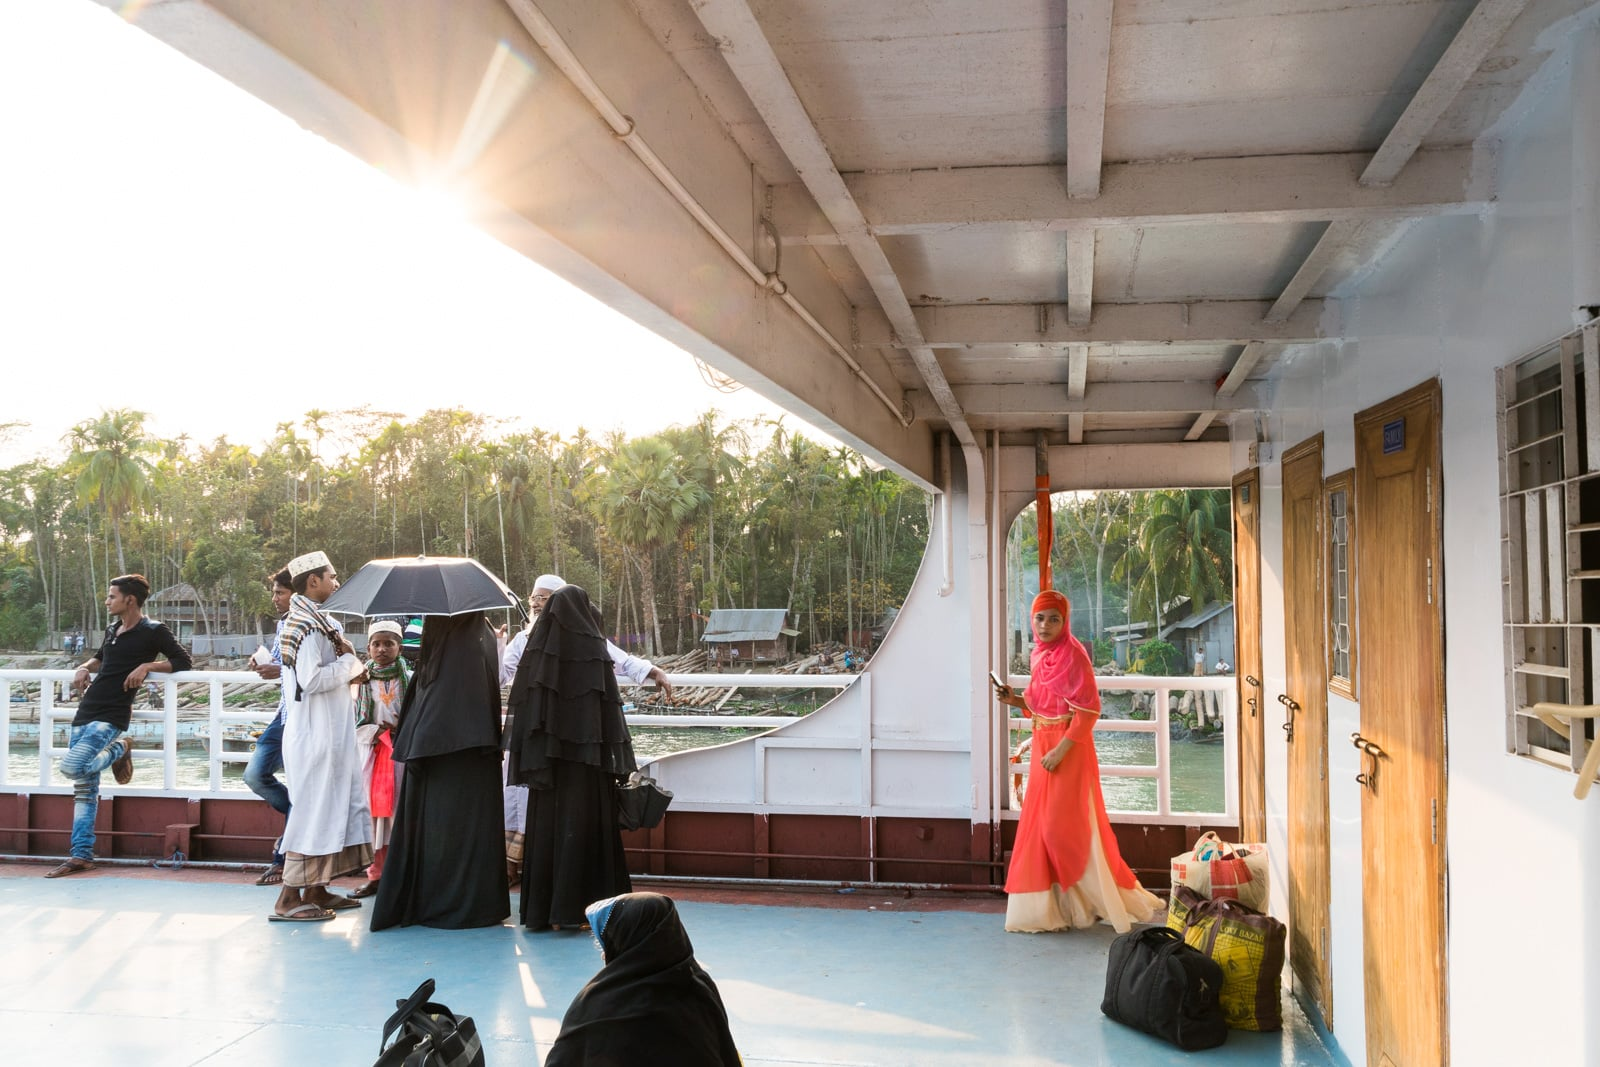 Launches from Hularhat to Dhaka, Bangladesh - Women in burqa looking out from the boat deck - Lost With Purpose travel blog